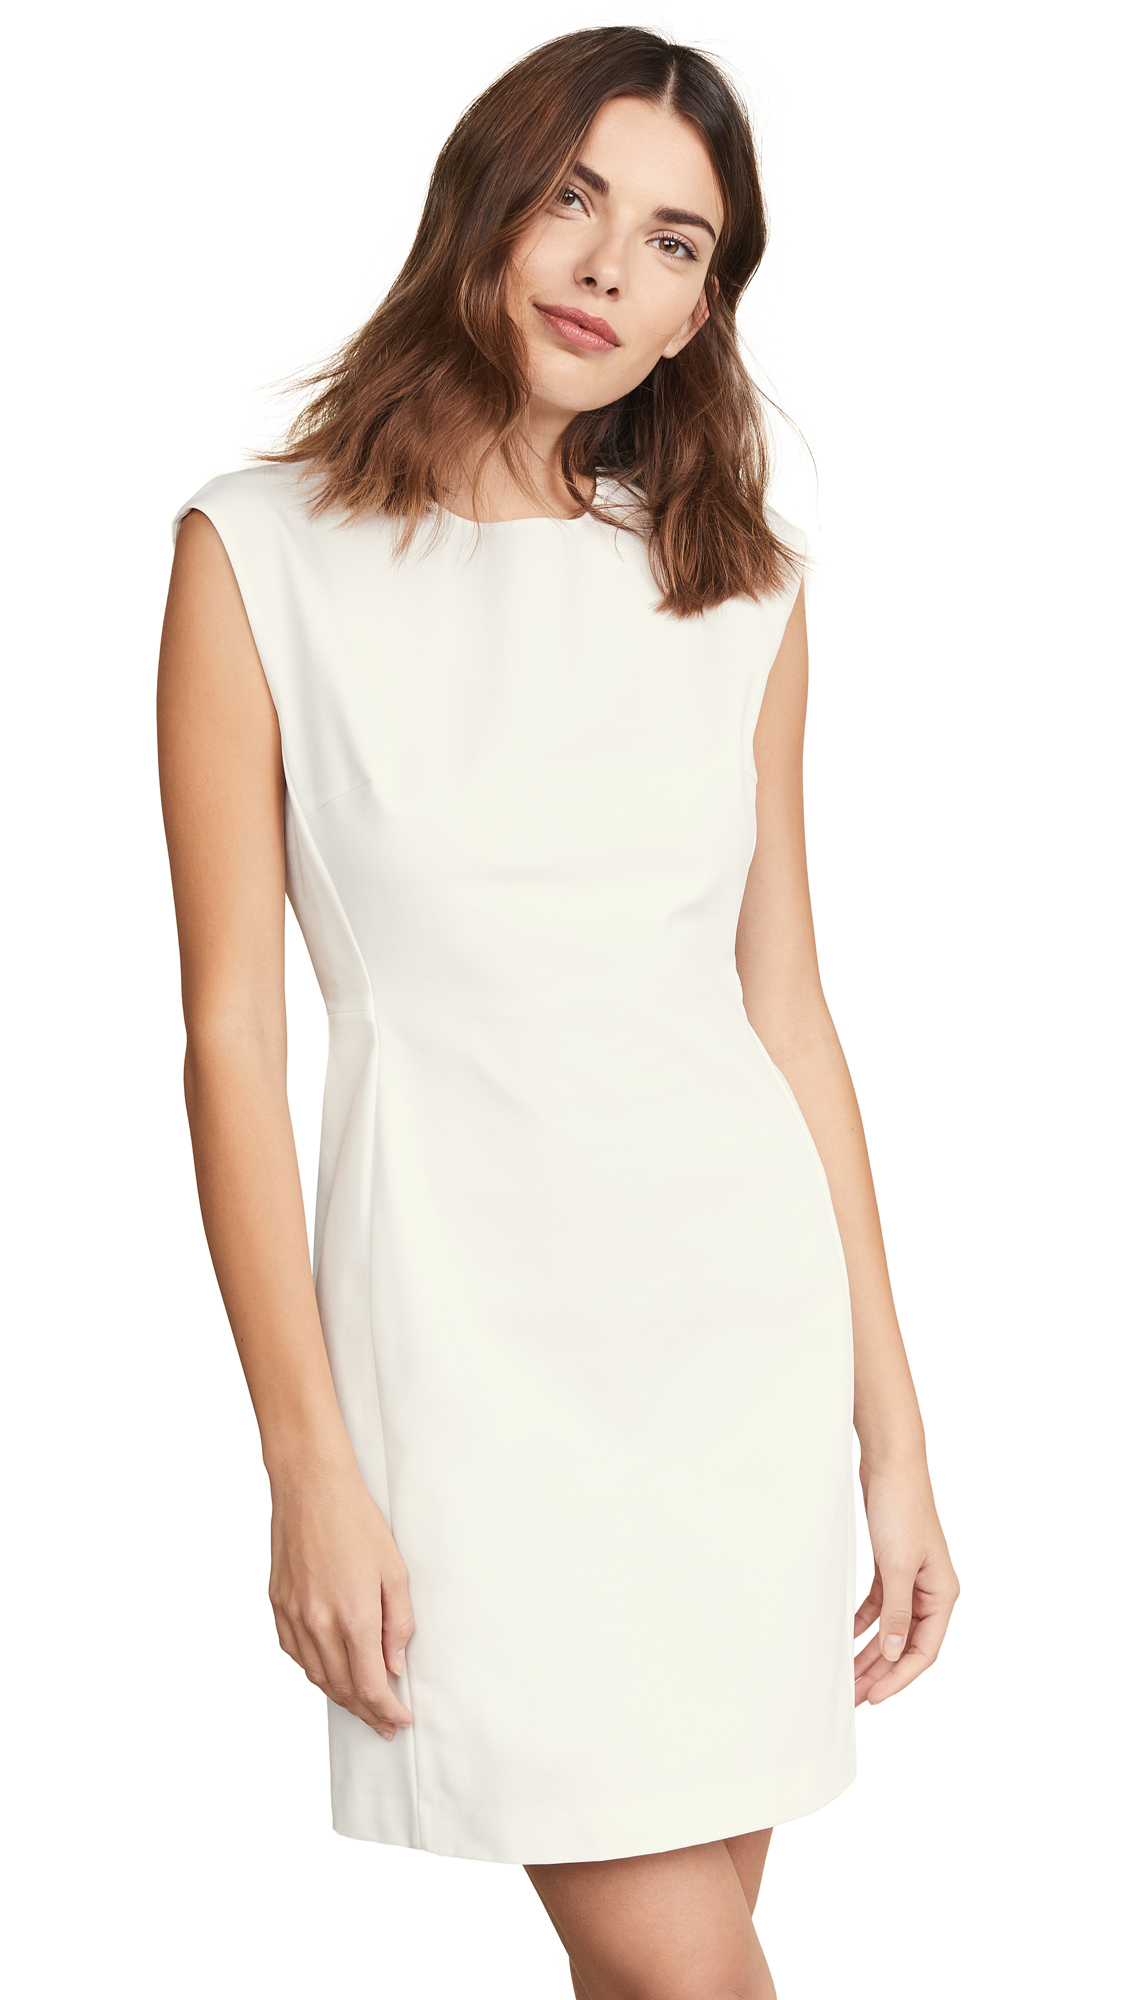 Theory Structured Fitted Dress - Sea Salt